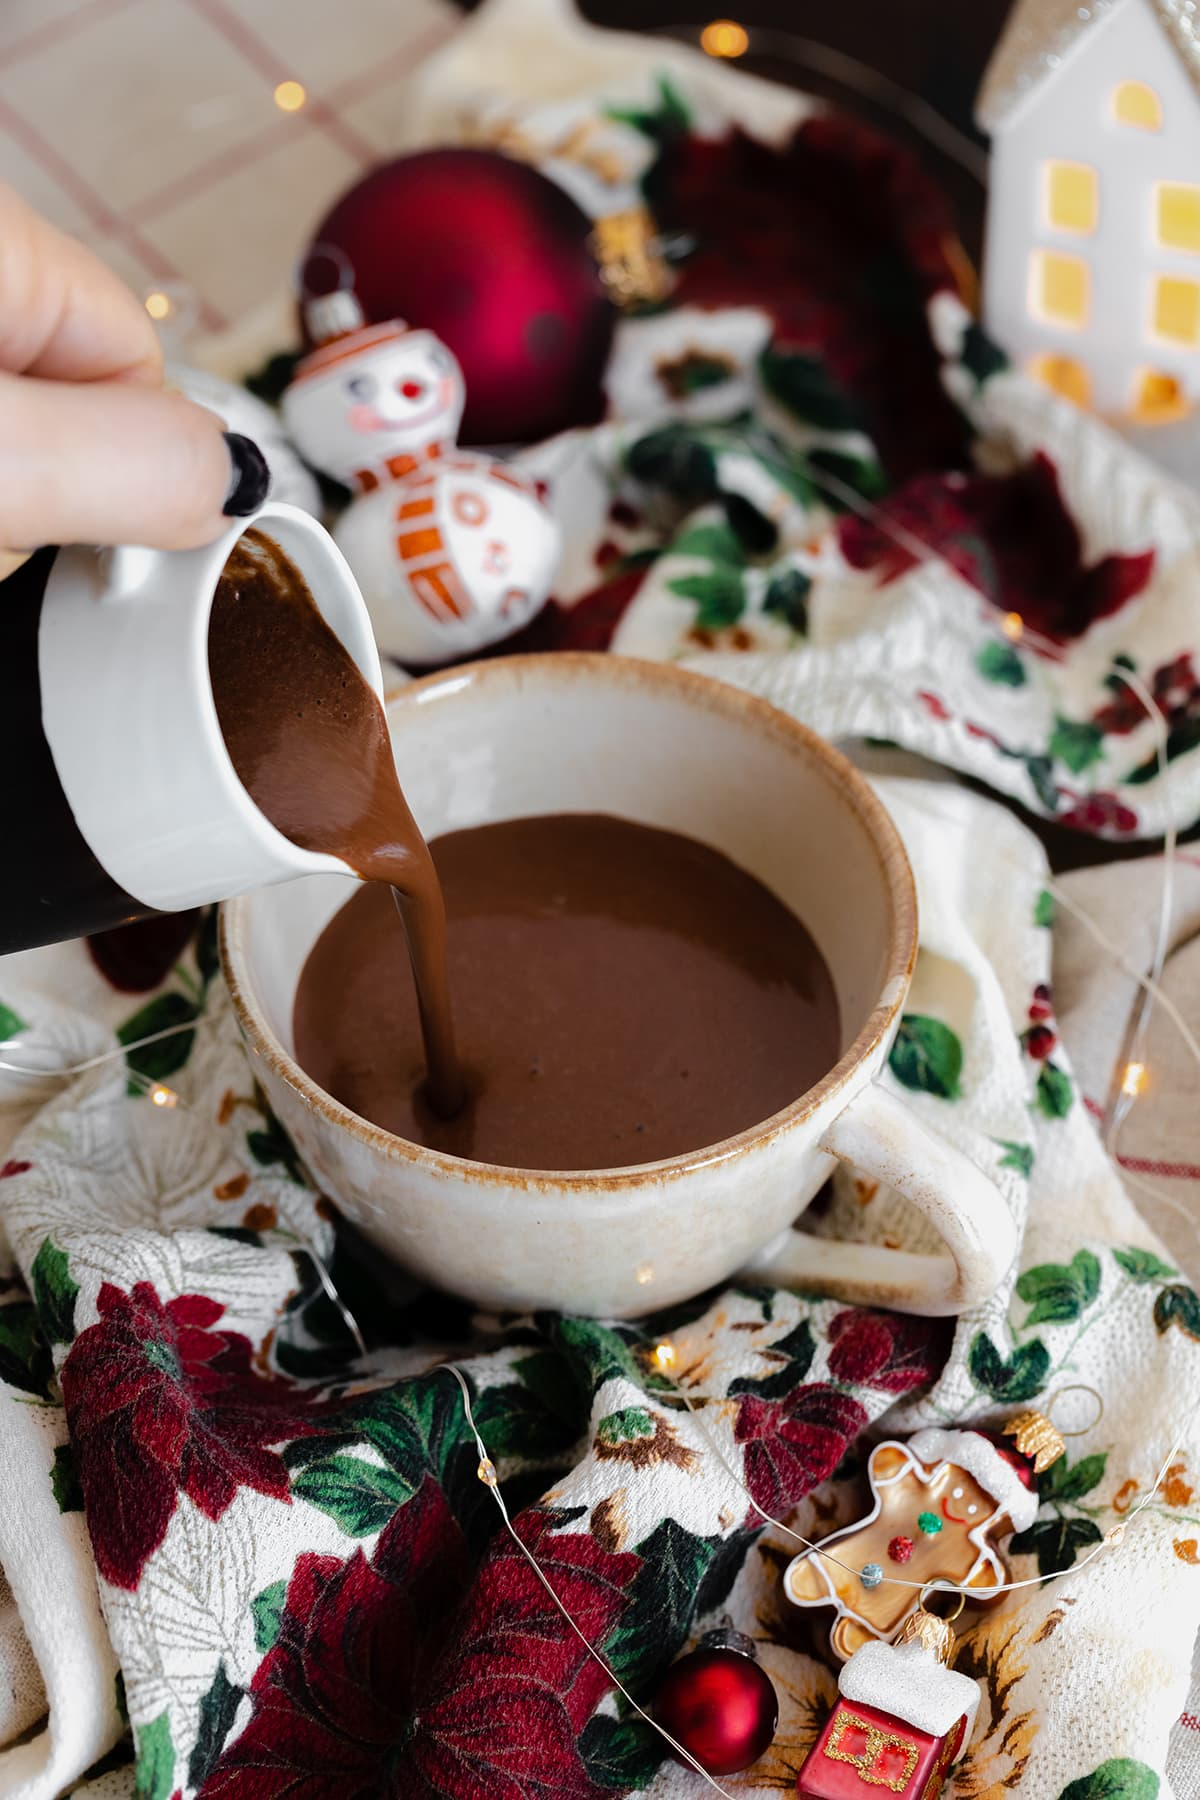 A shot of the hot chocolate being poured into a cup on a Christmas themed tablecloth.